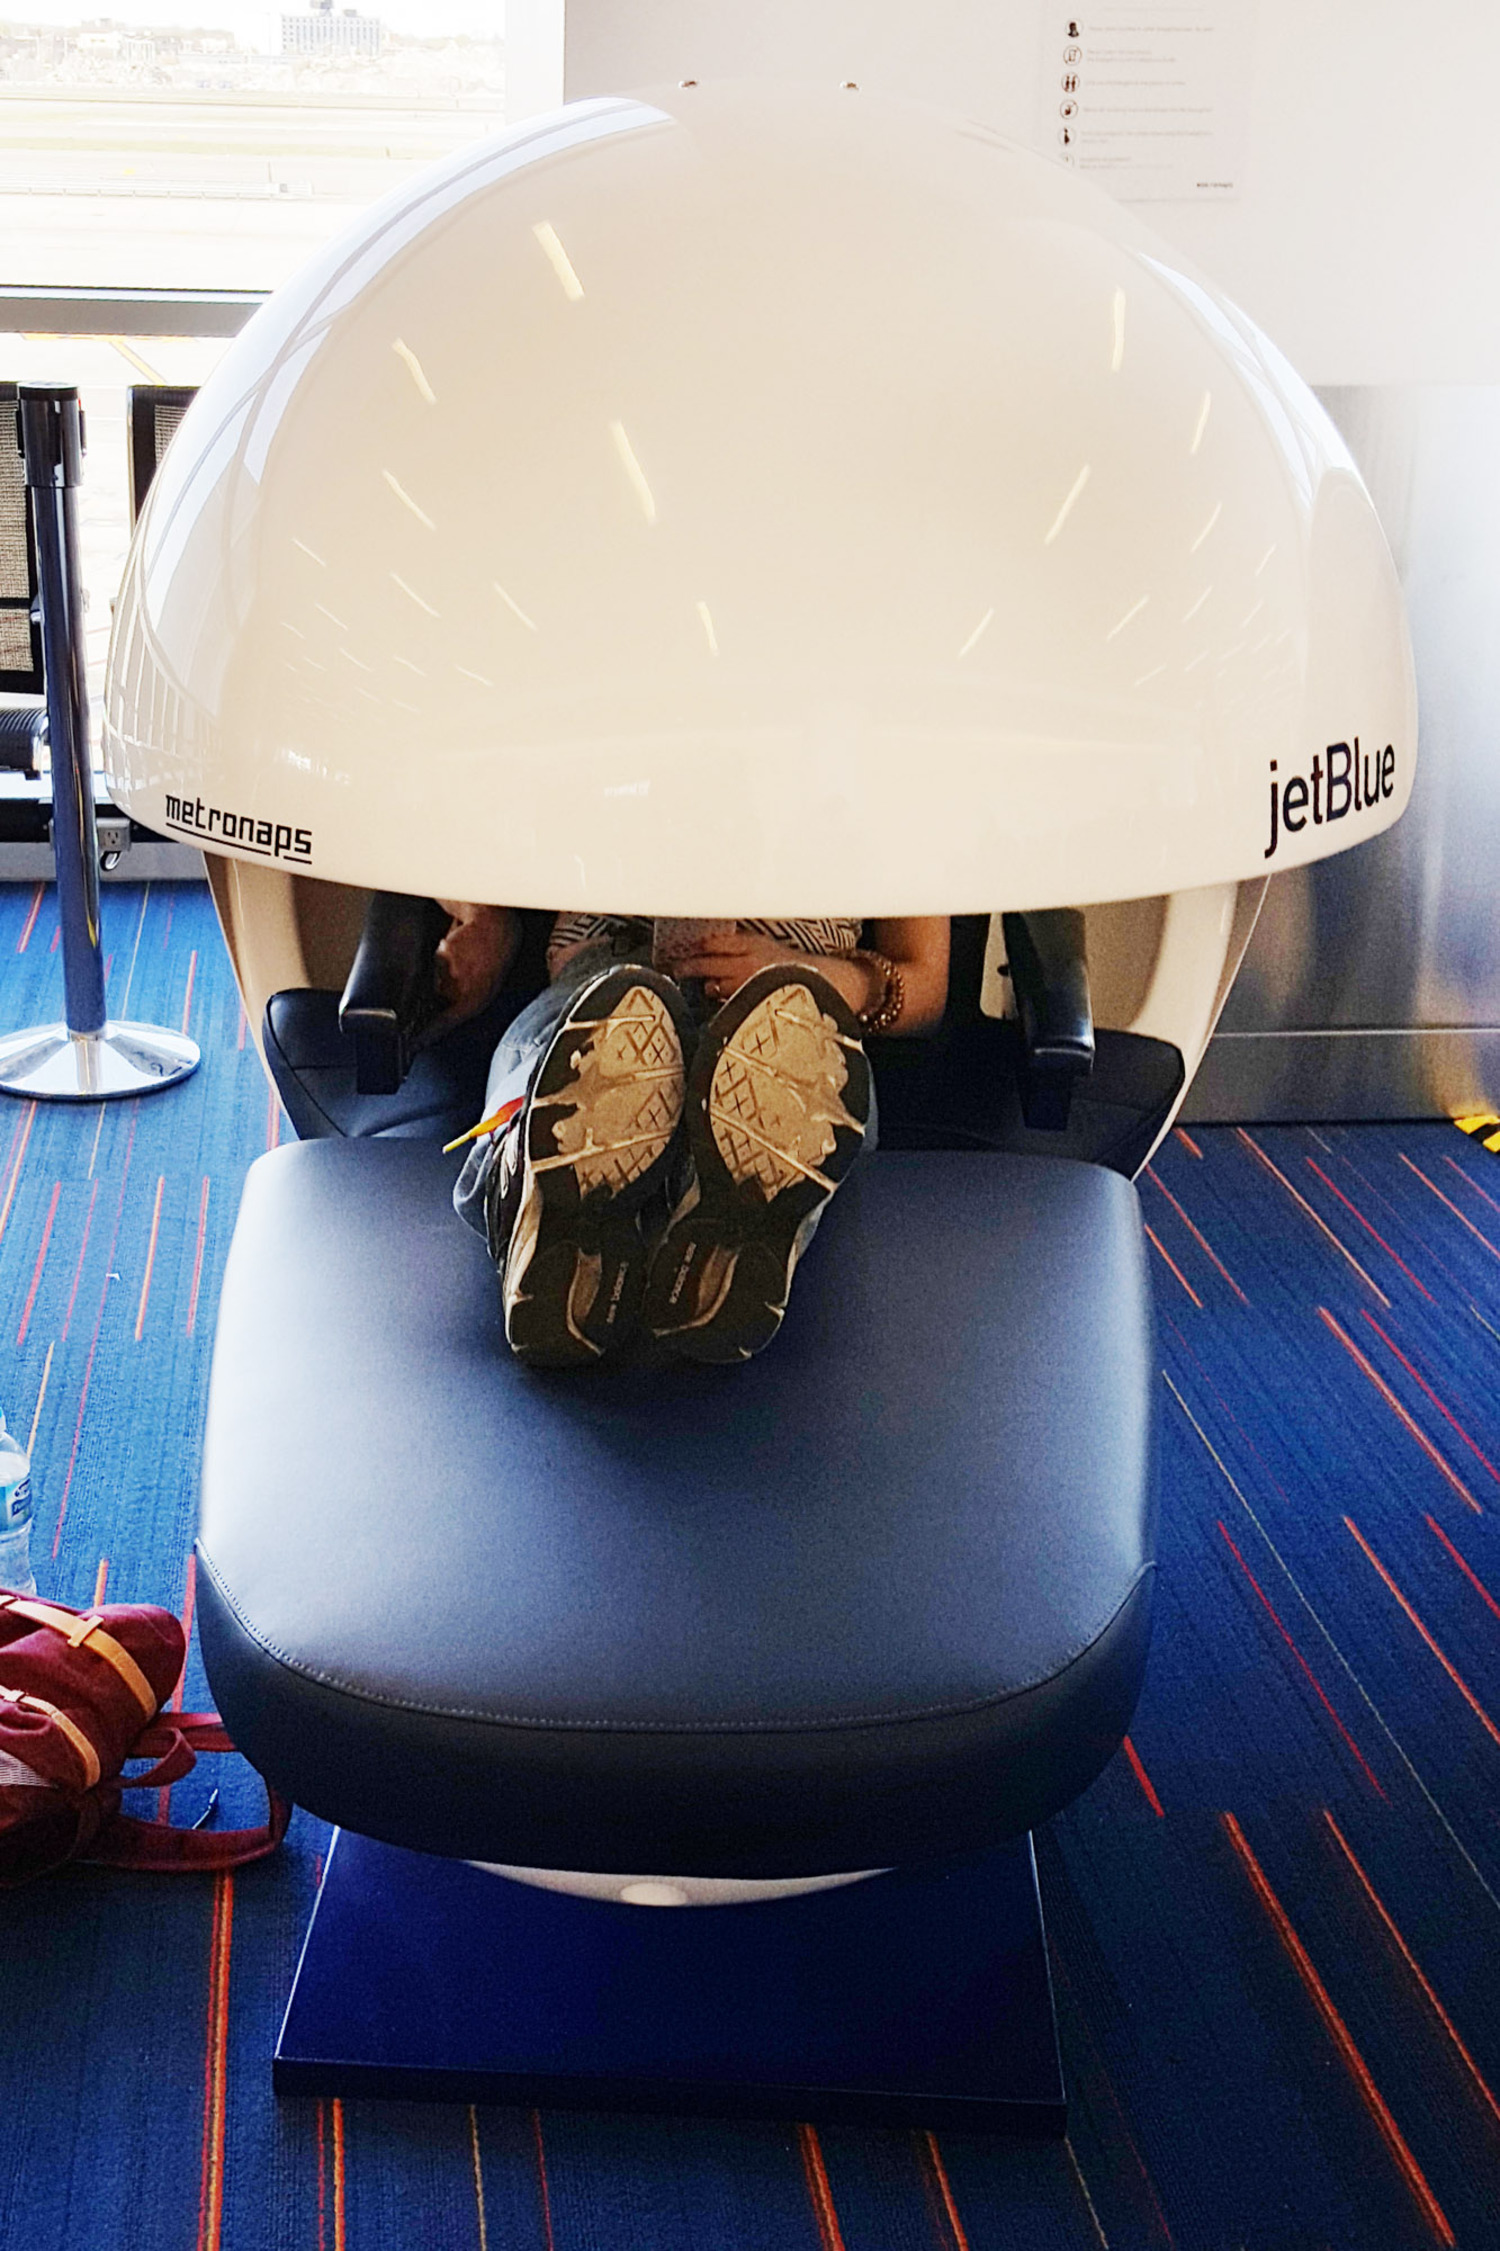 Jet Blue Napping Pods at JFK Airport